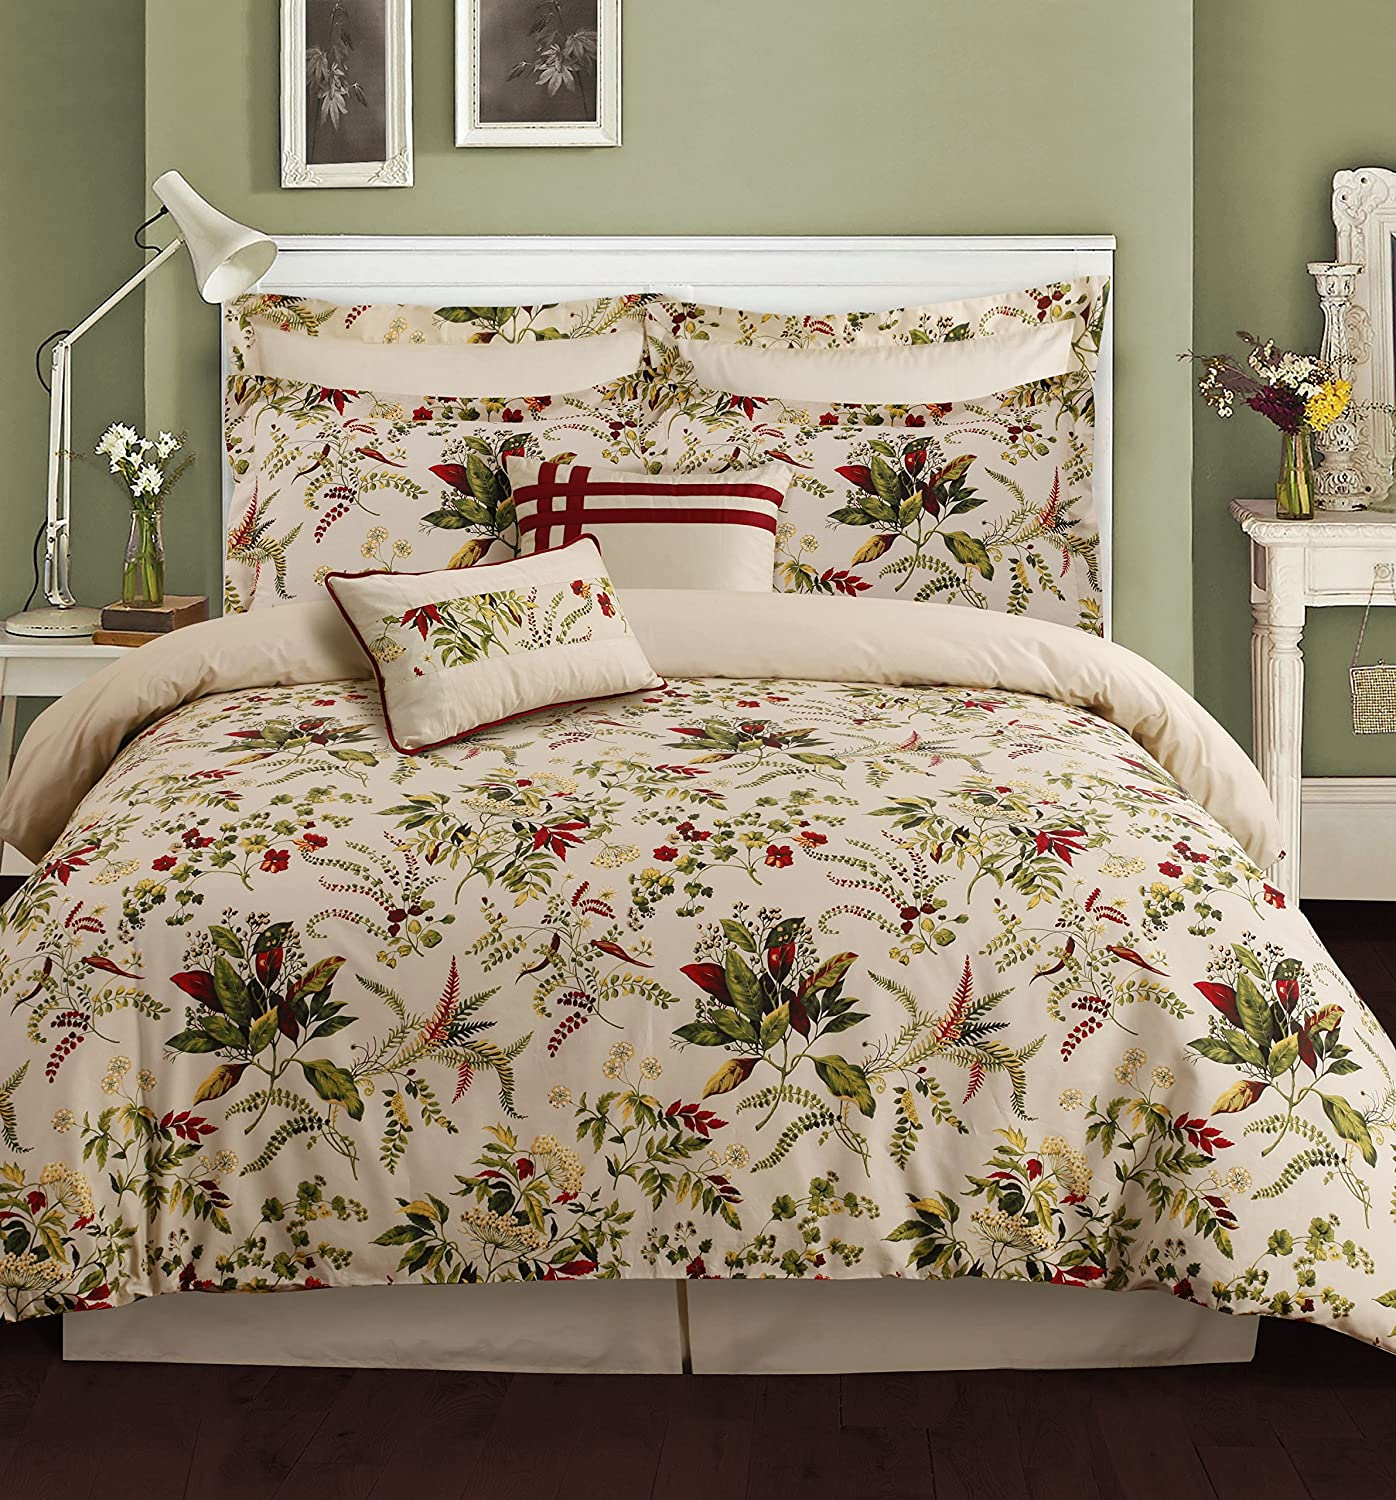 Maui 5-Piece Egyptian Cotton Percale Printed Duvet Cover Set Queen